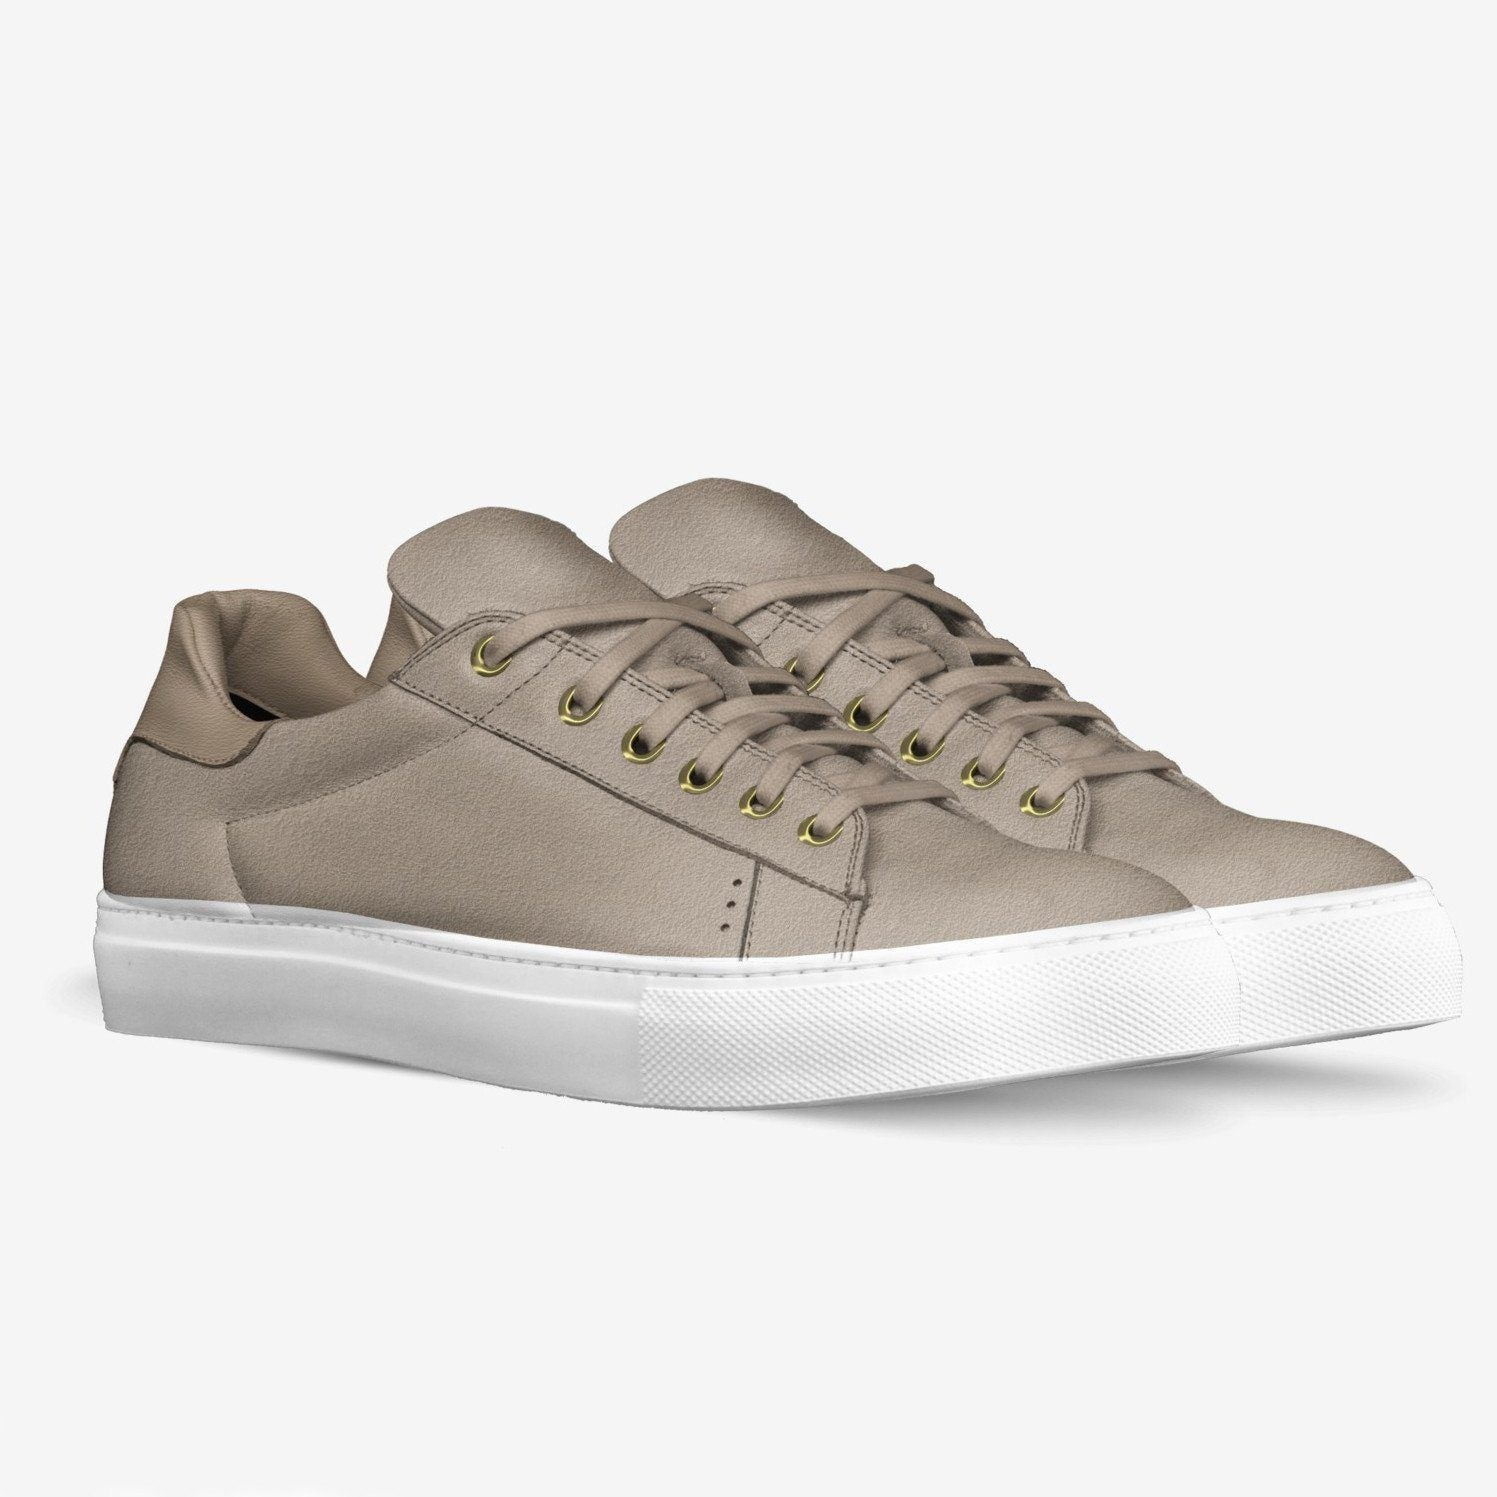 Poor Little Rich Boy Lorenzo Sneakers in Berkeley Beige - Poor Little Rich Boy Men's Shoes - Plrbclothing.com